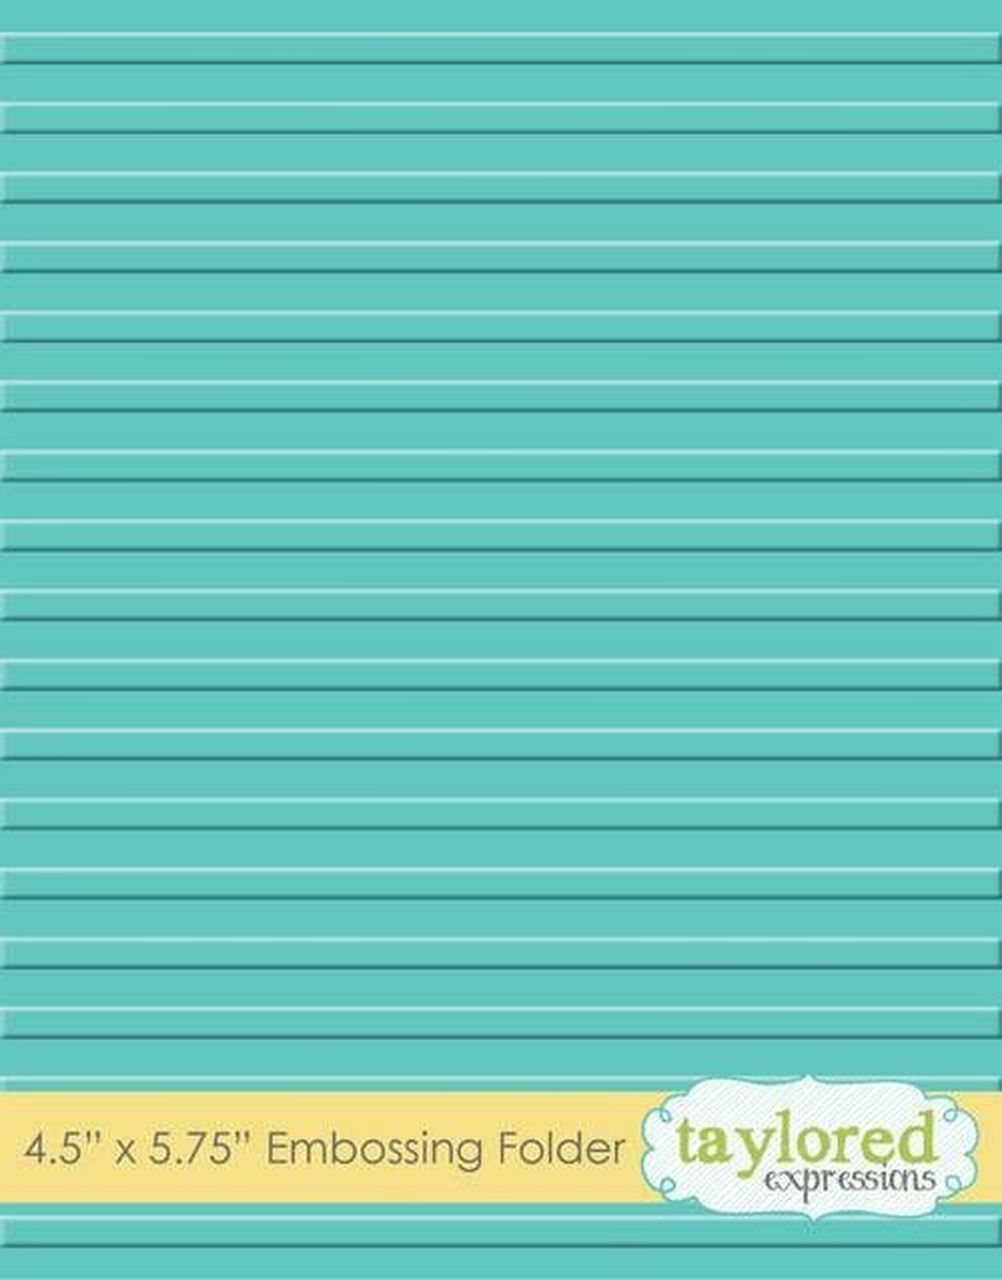 Taylored Expressions - Corrugated Embossing Folder